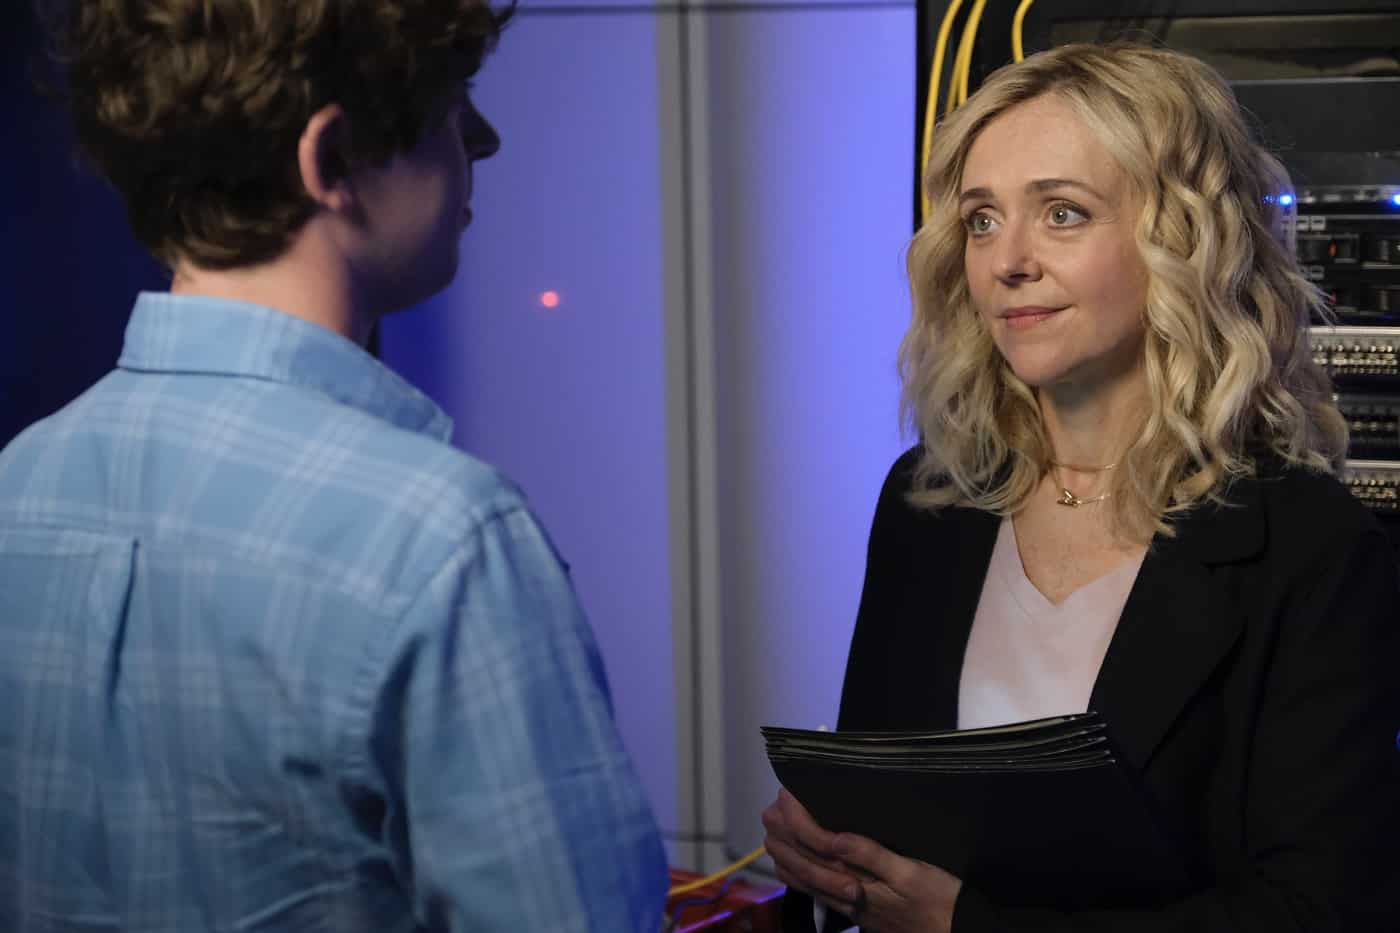 """THE GOOD DOCTOR Season 5 Episode 3 - """"Measure of Intelligence"""" – Shaun confronts Salen (Rachel Bay Jones) about the many changes she has implemented since coming on at St. Bonaventure, and Glassman is forced to accept his new role at the hospital on an all-new """"The Good Doctor,"""" MONDAY, OCT. 11 (10:00-11:00 p.m. EDT), on ABC. (ABC/Jeff Weddell) RACHEL BAY JONES"""